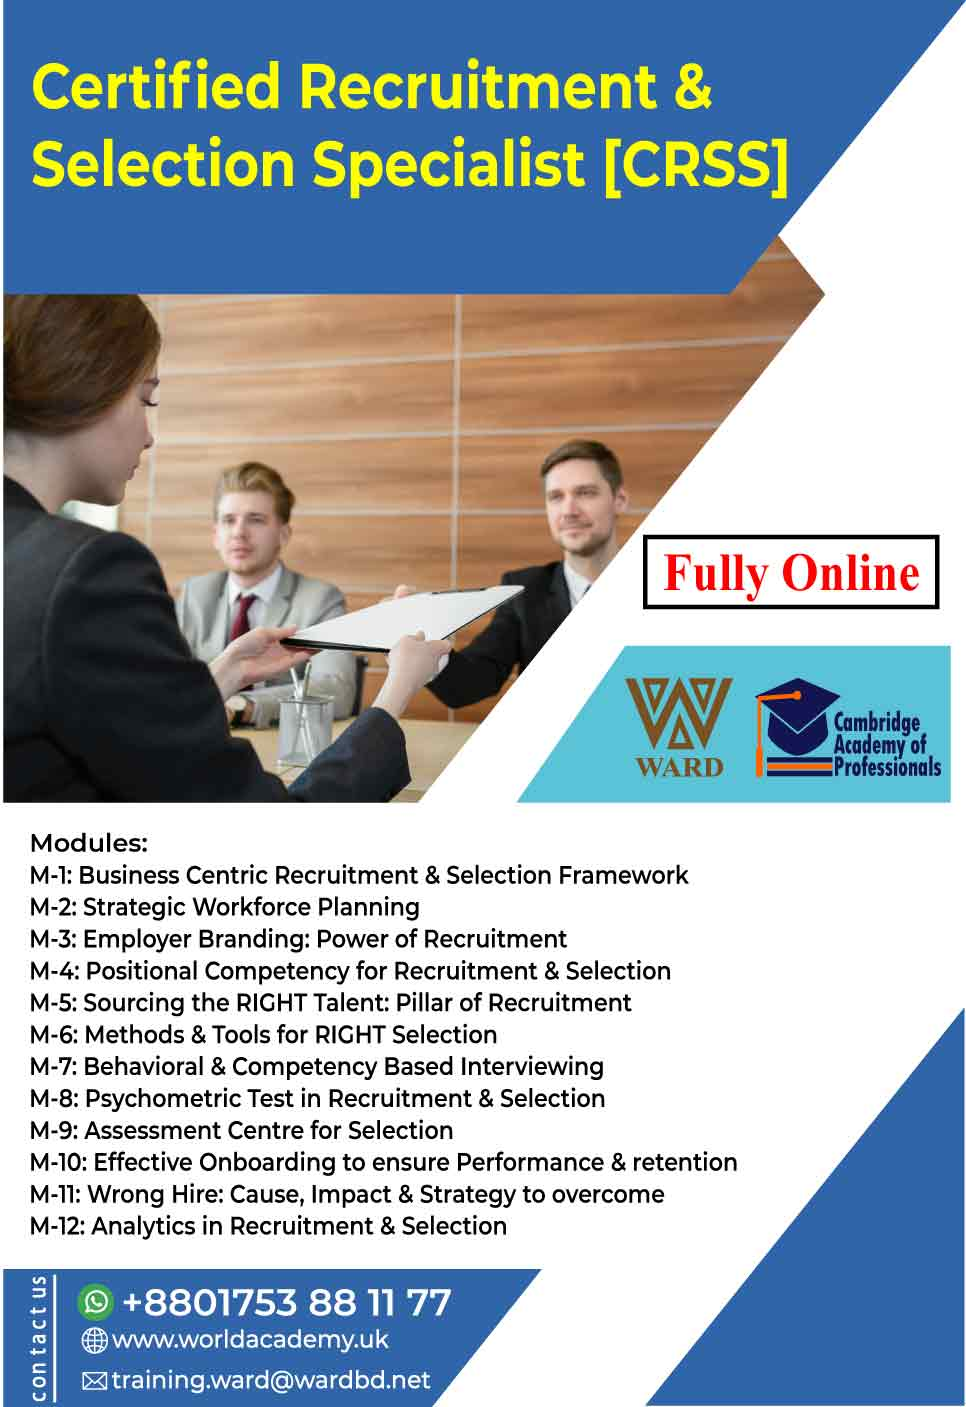 Certified Recruitment & Selection Specialist [CRSS]